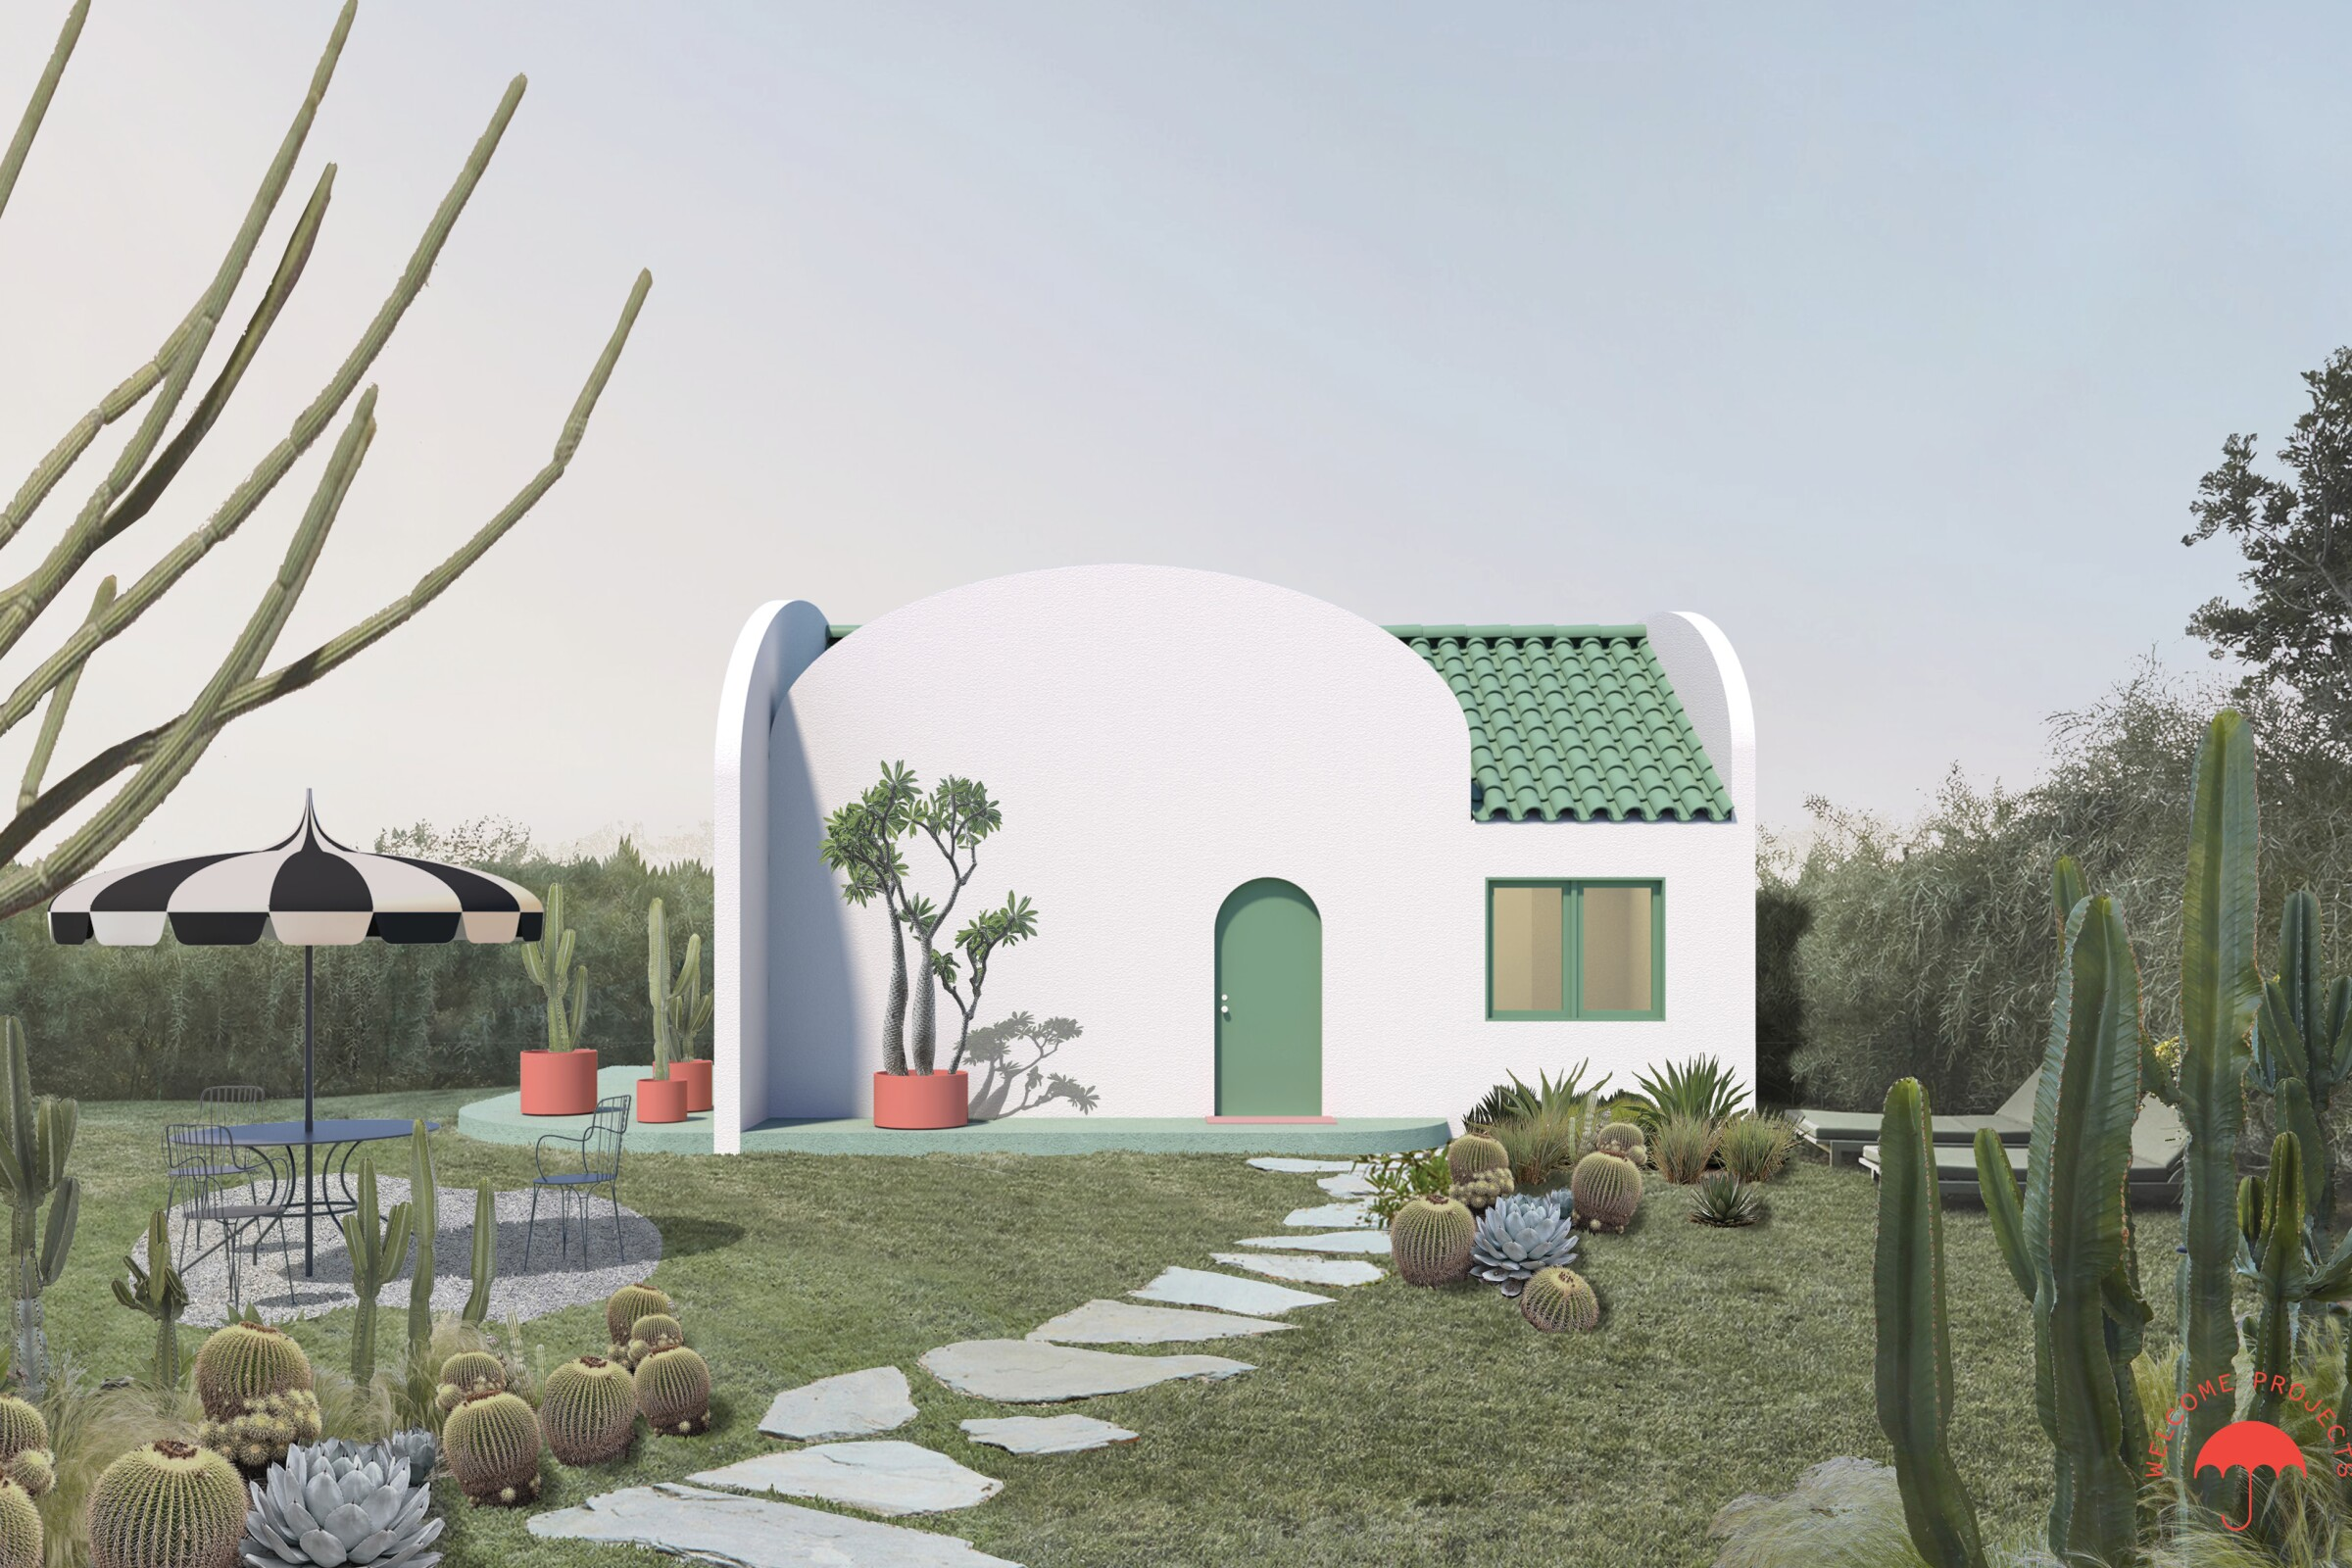 An image of a small white house with a green tile roof and desert landscaping.